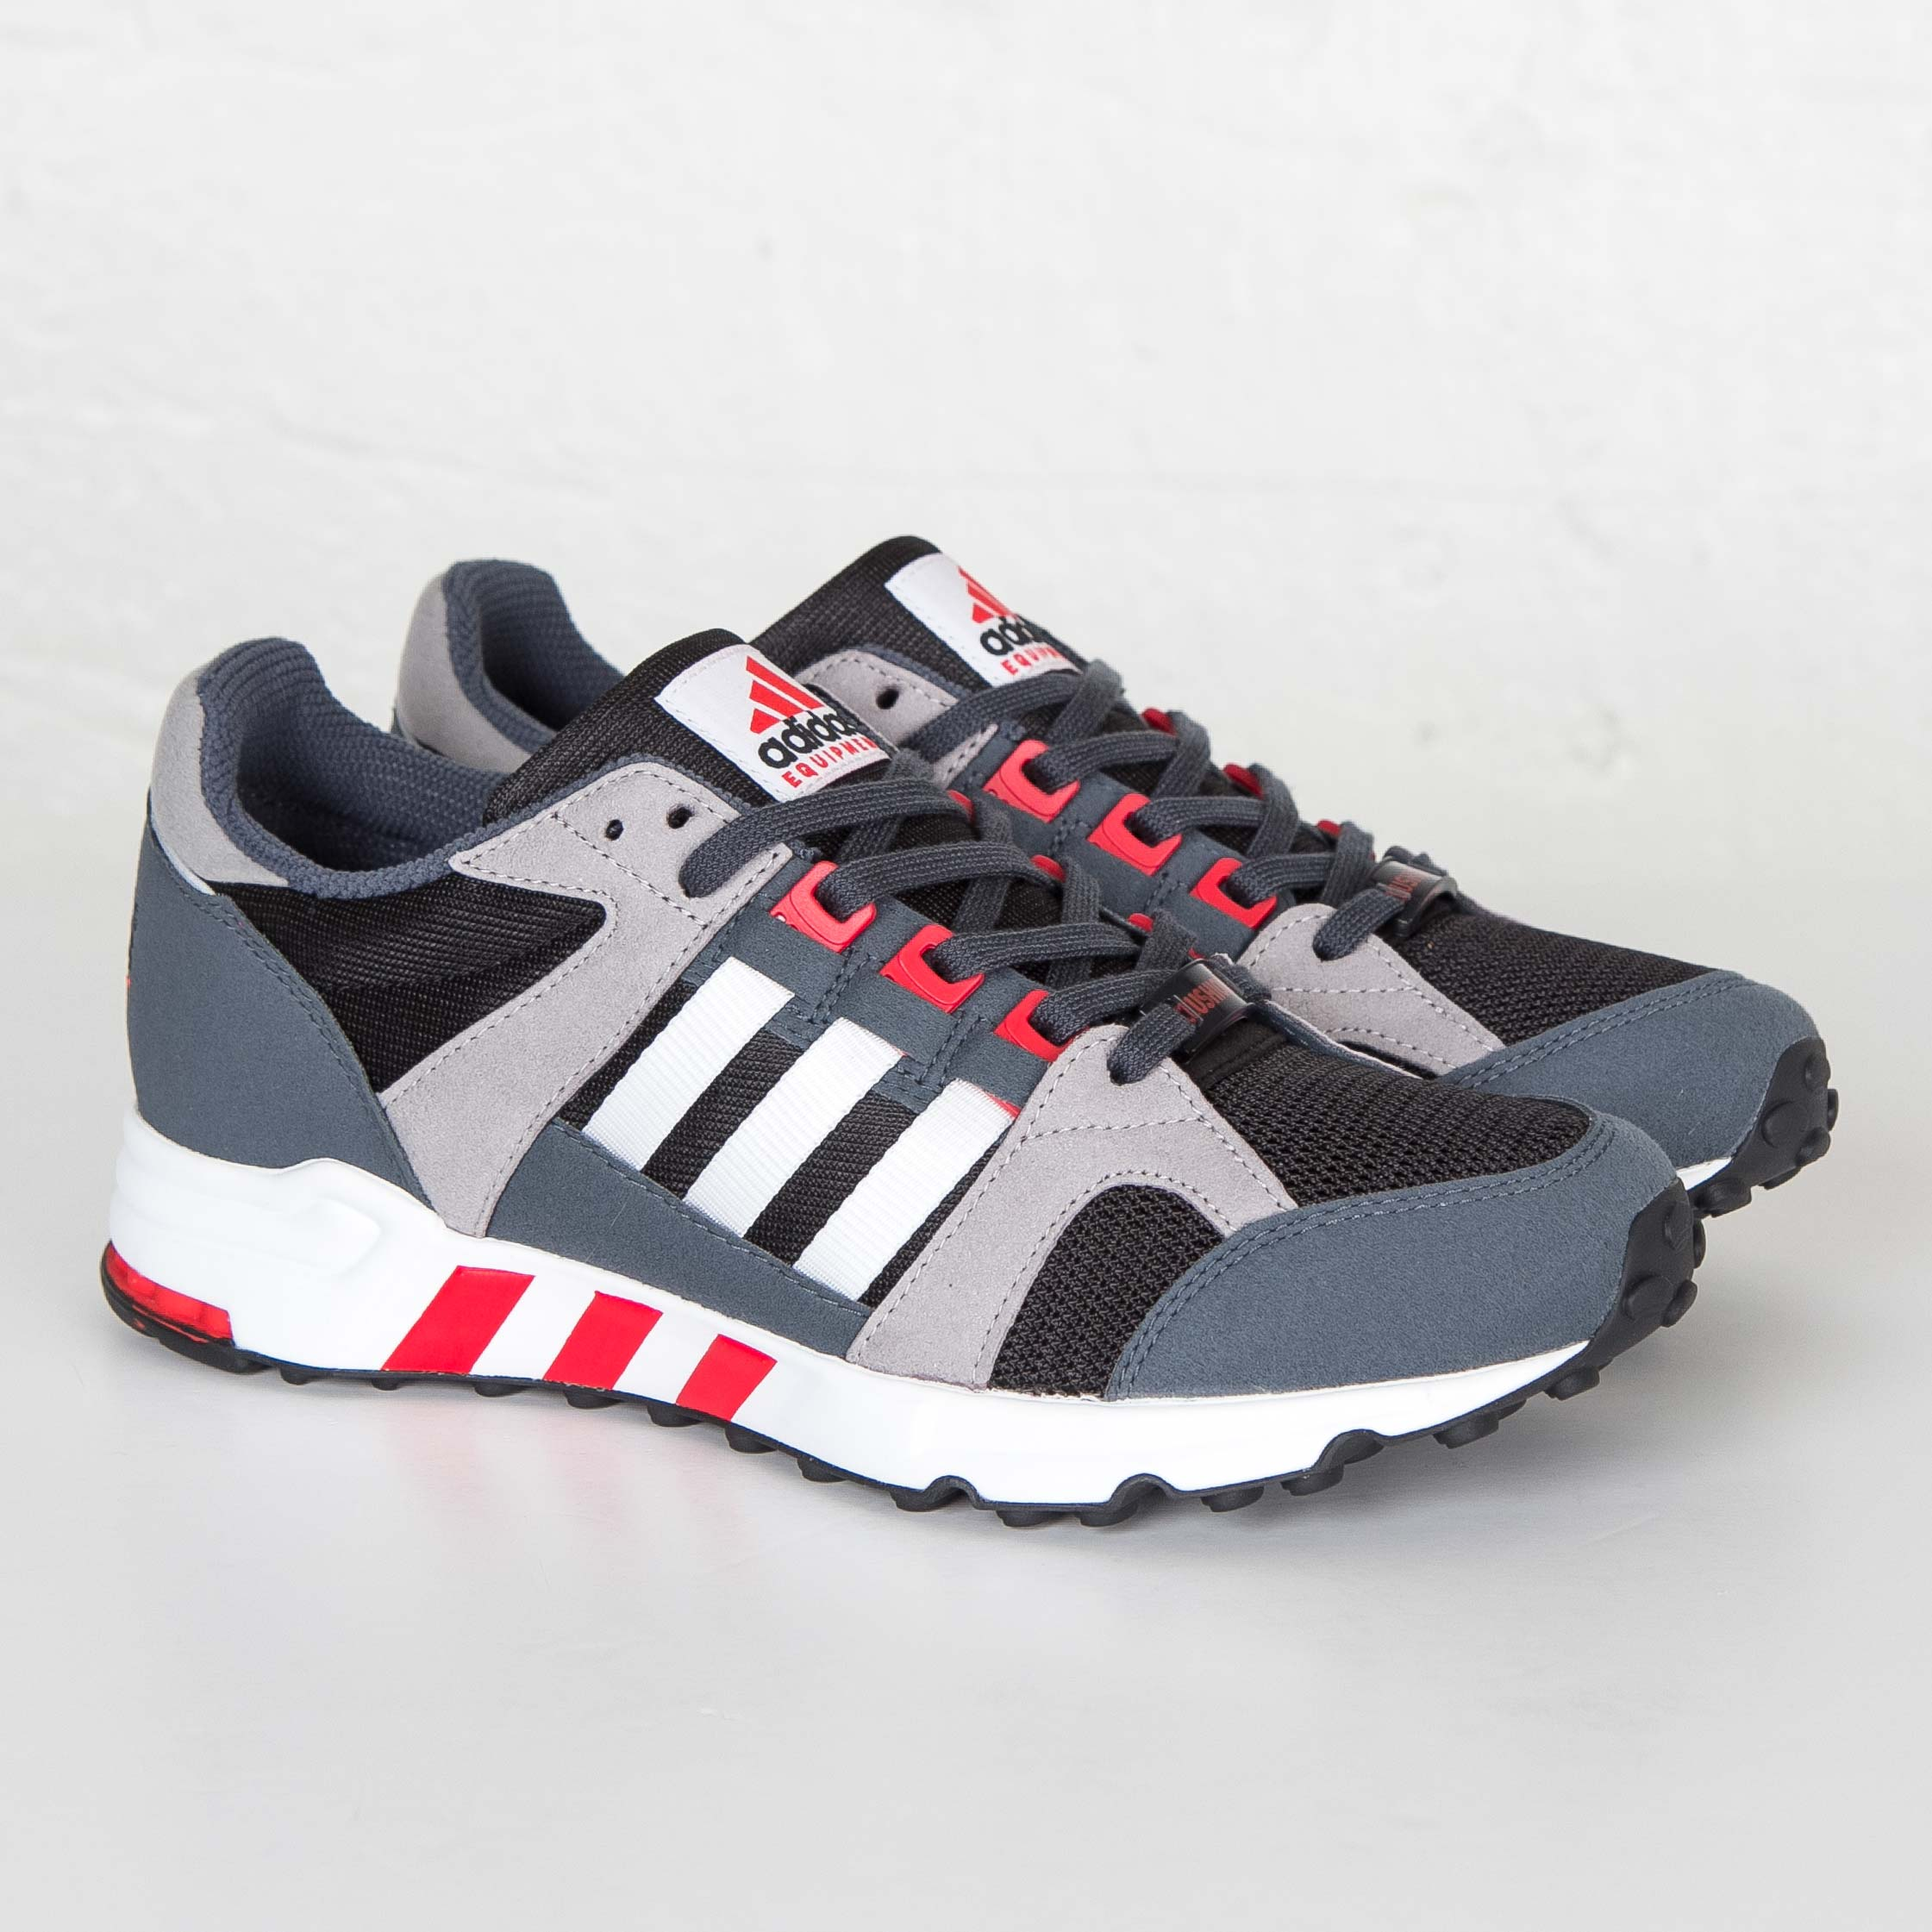 ADIDAS Equipment Running Cuscino 93 7.5 S79126Eqt